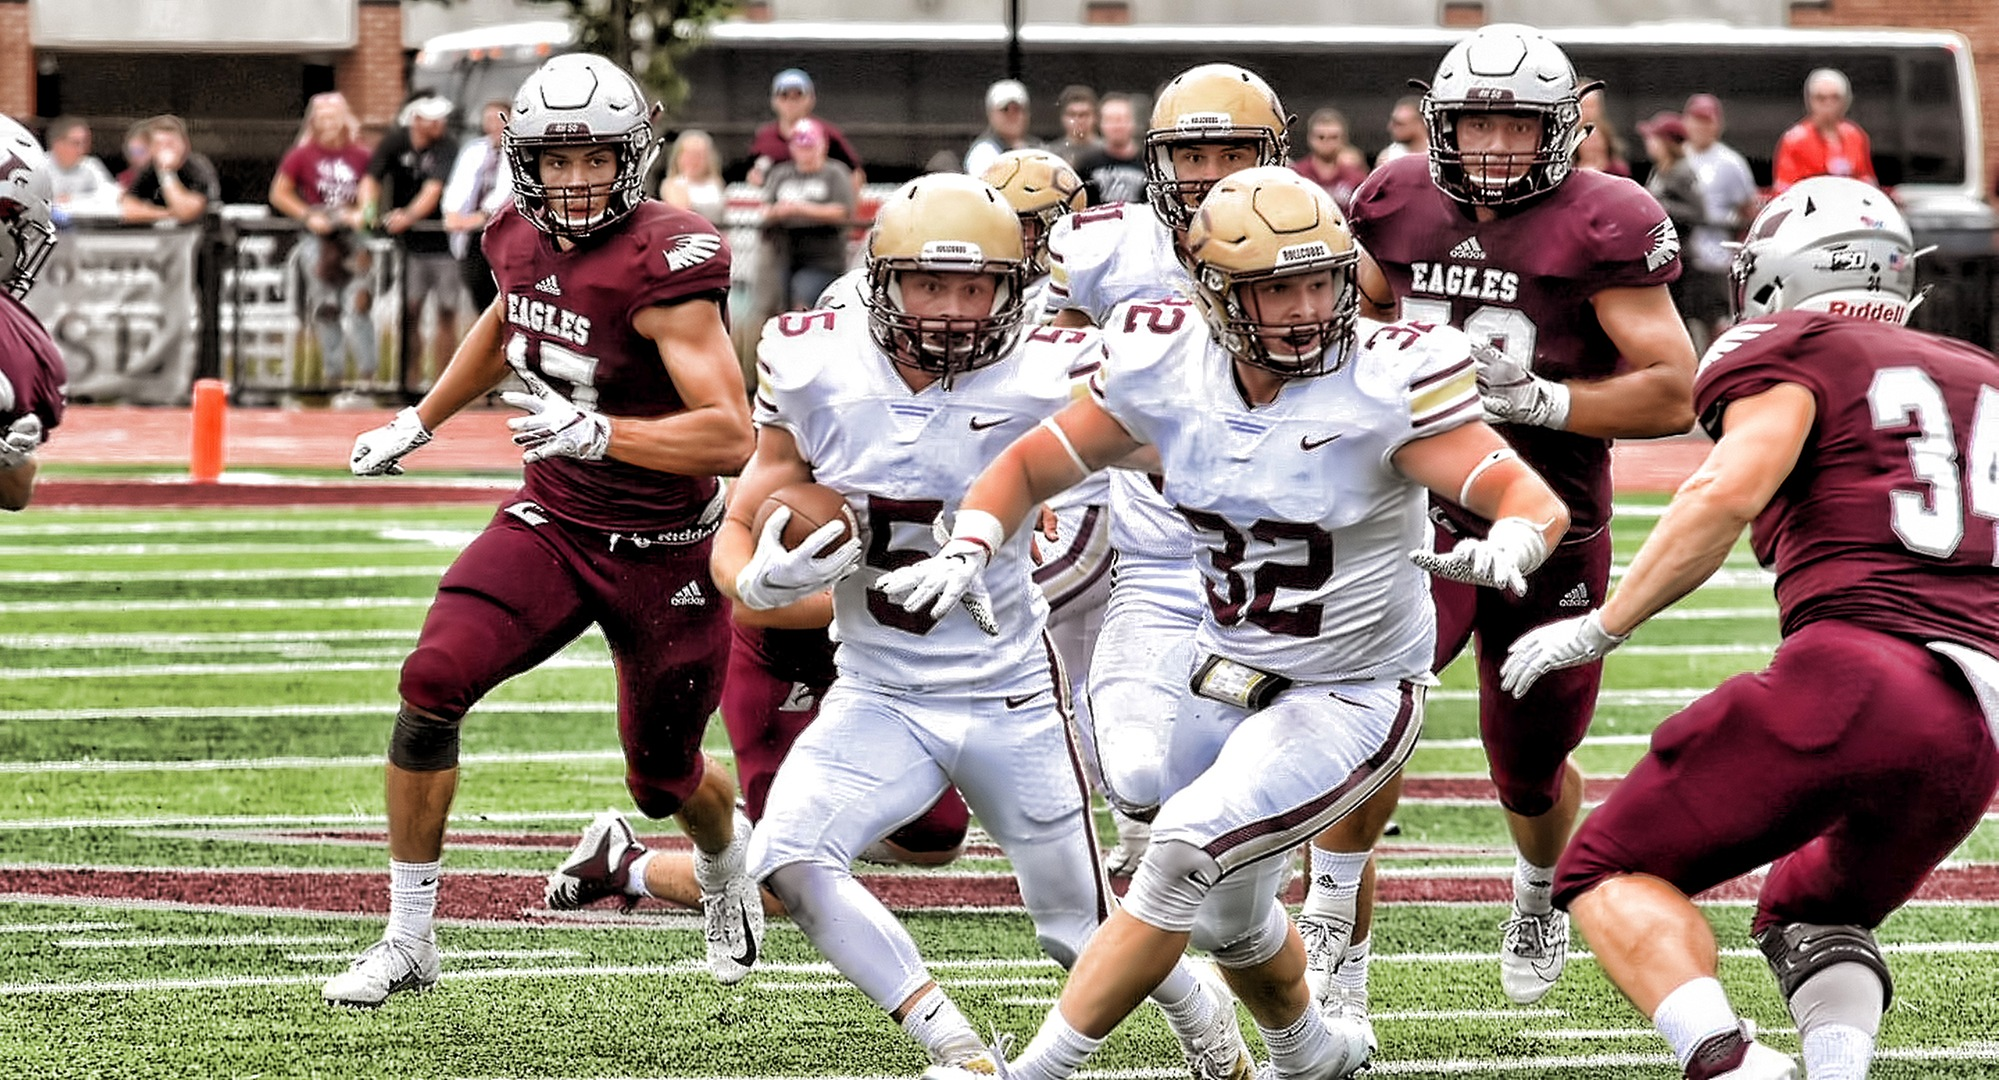 Sophomore Andy Gravdahl weaves his way through the La Crosse defense. He scored one of the two Cobber TDs on the day. (Photo courtesy of Vince Arnold)